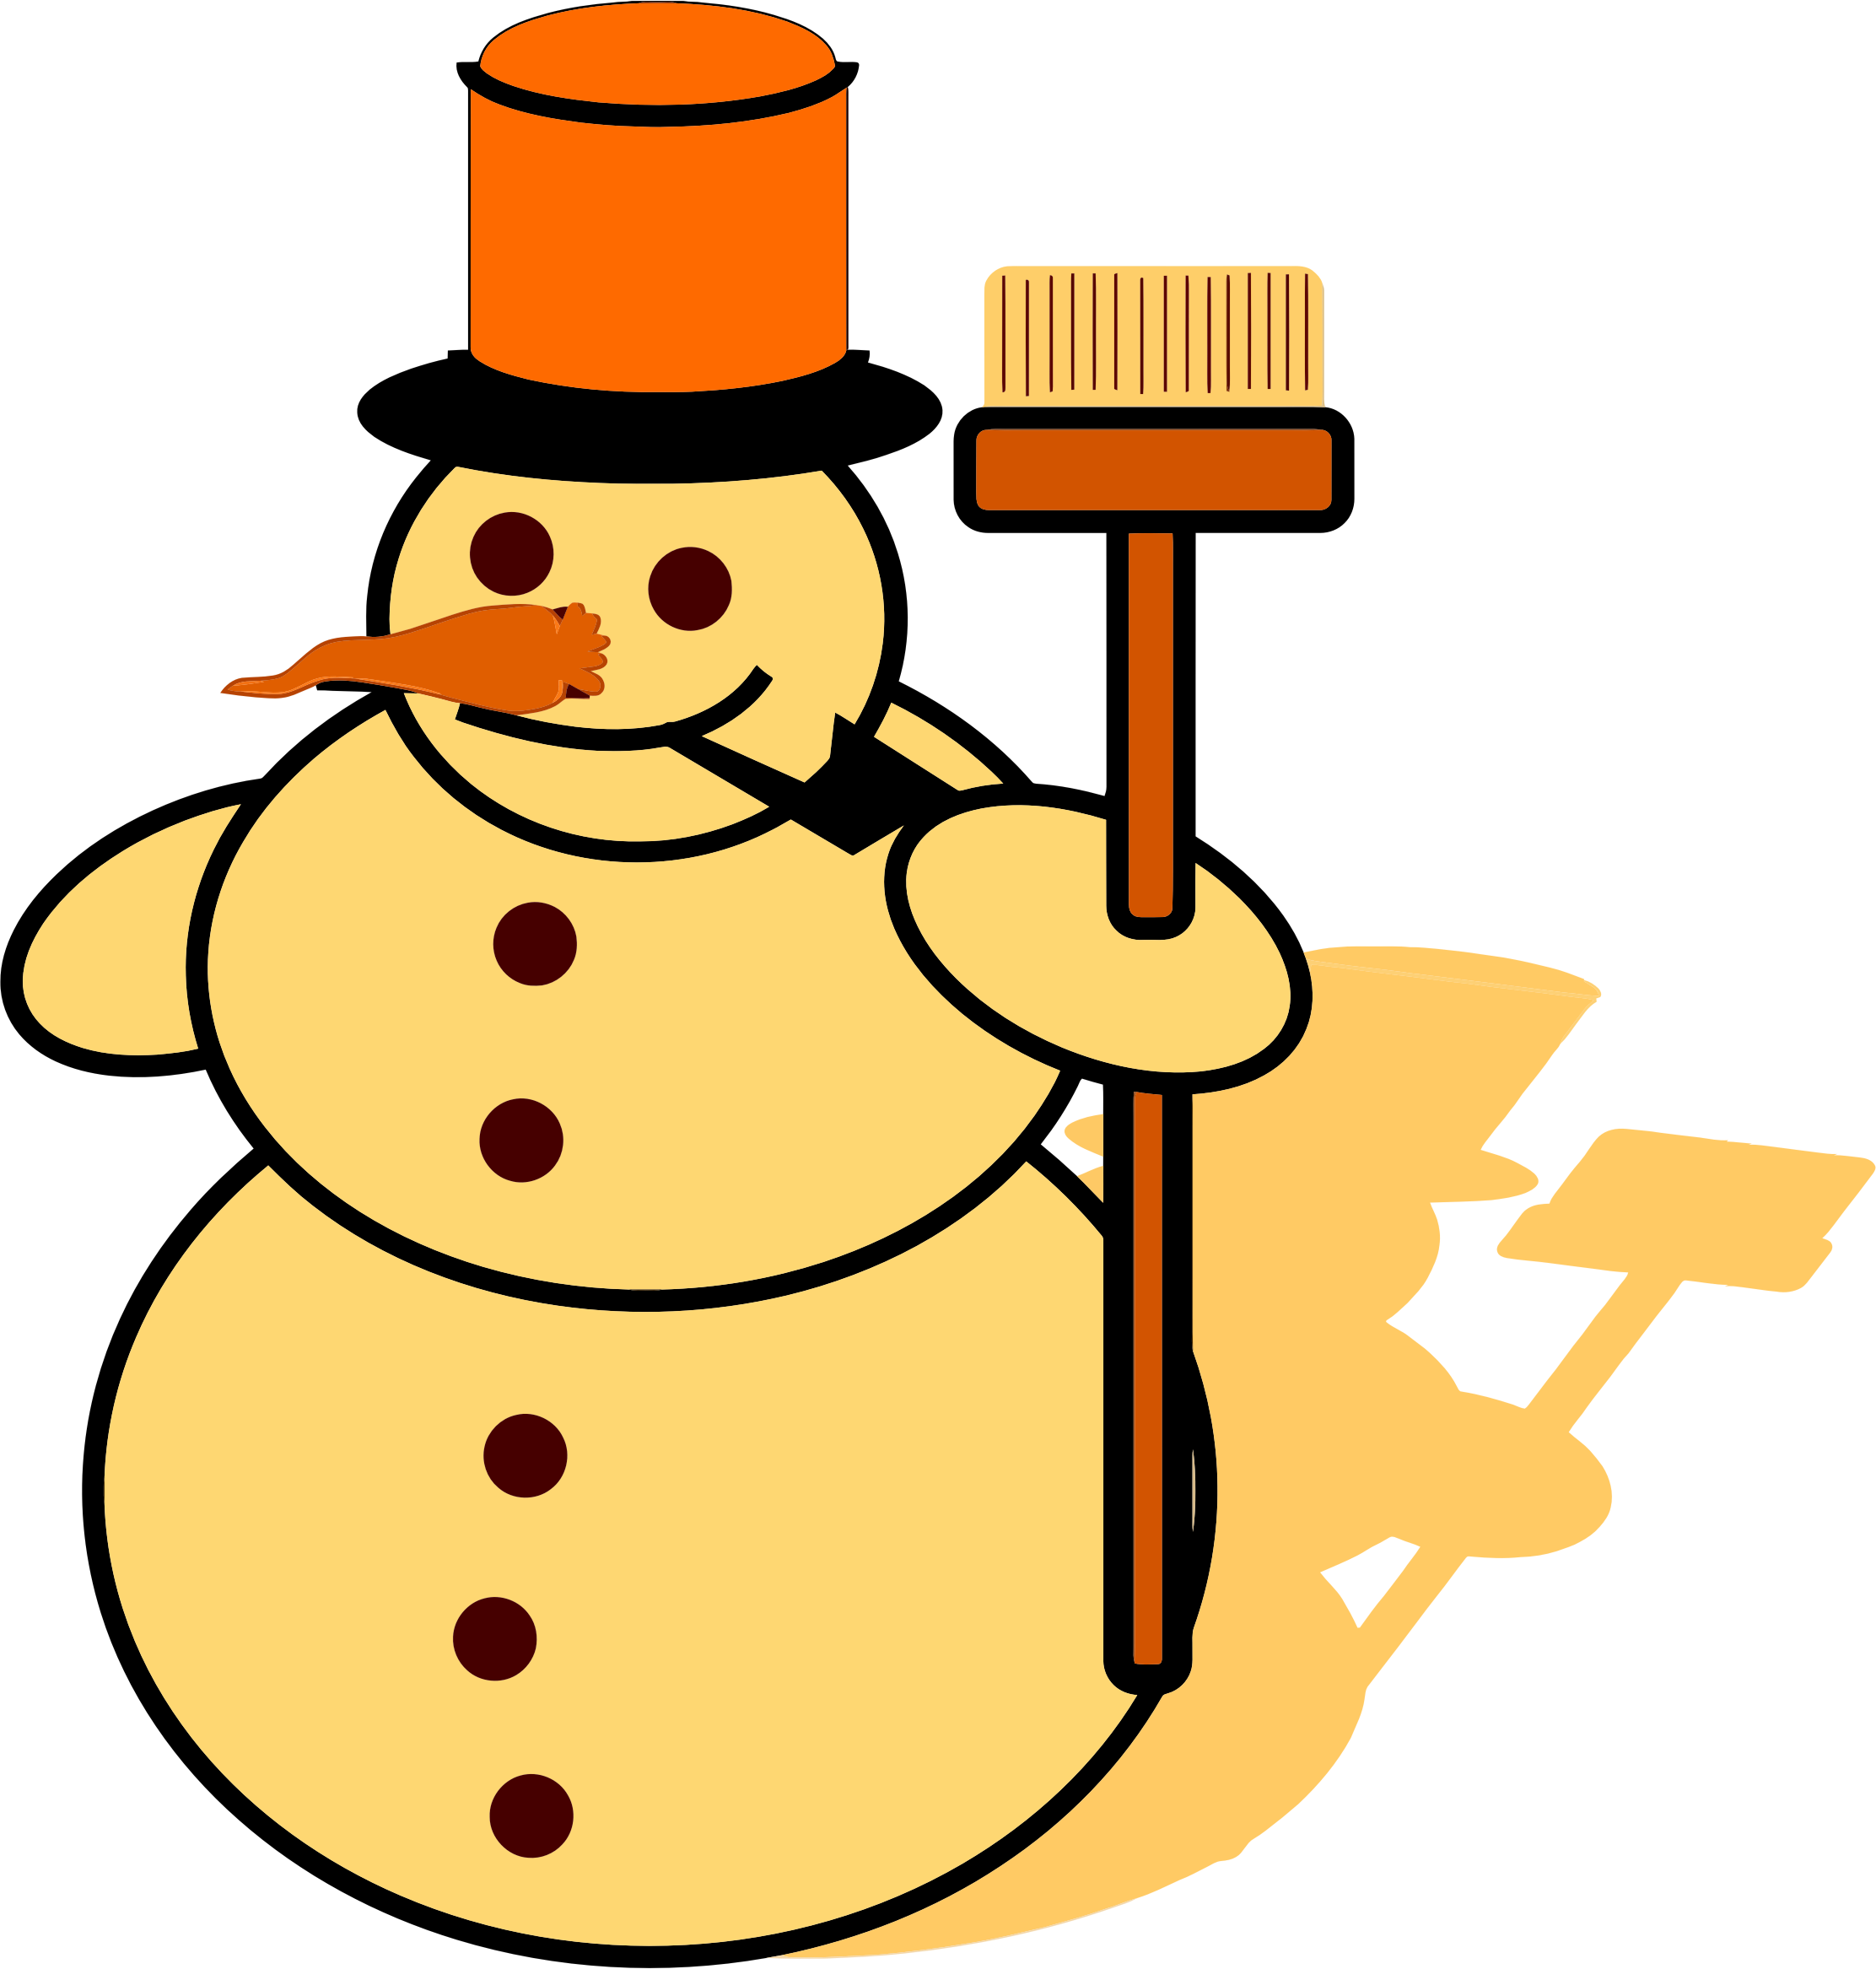 Yellow Snowman by GDJ